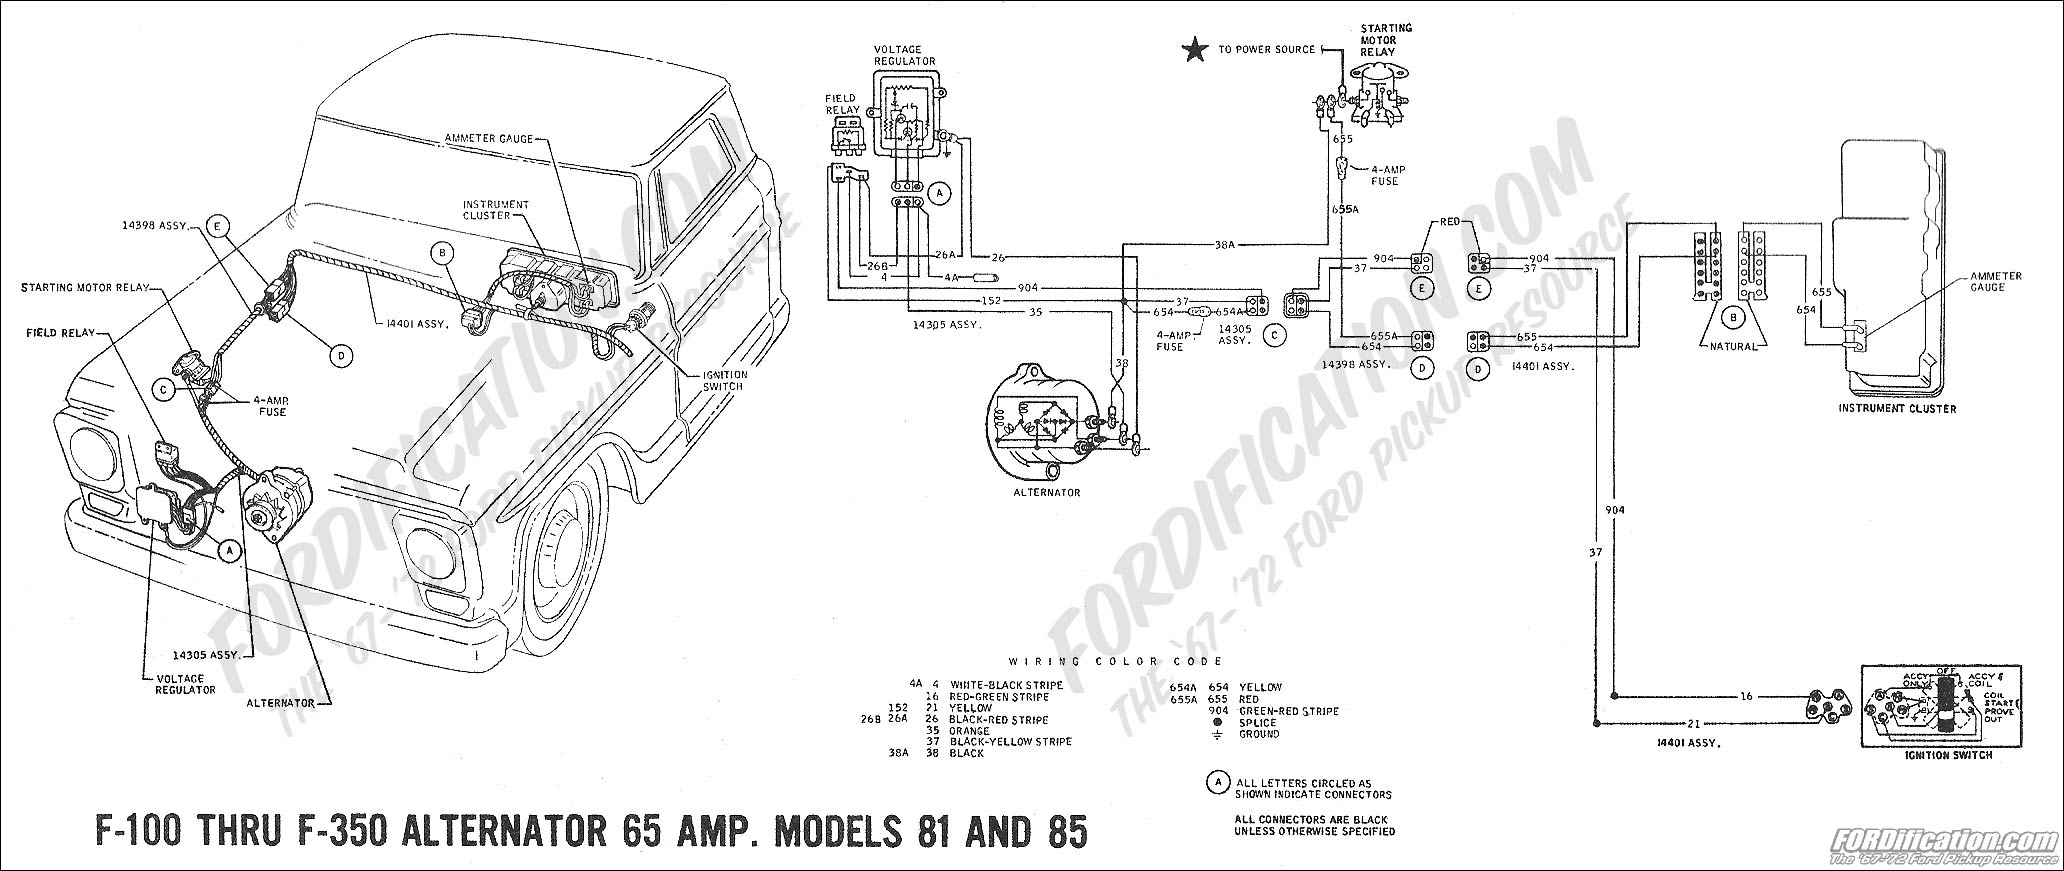 1981 ford charging system wiring diagram wiring diagram options 1981 ford alt wiring wiring diagram toolbox 1981 ford charging system wiring diagram